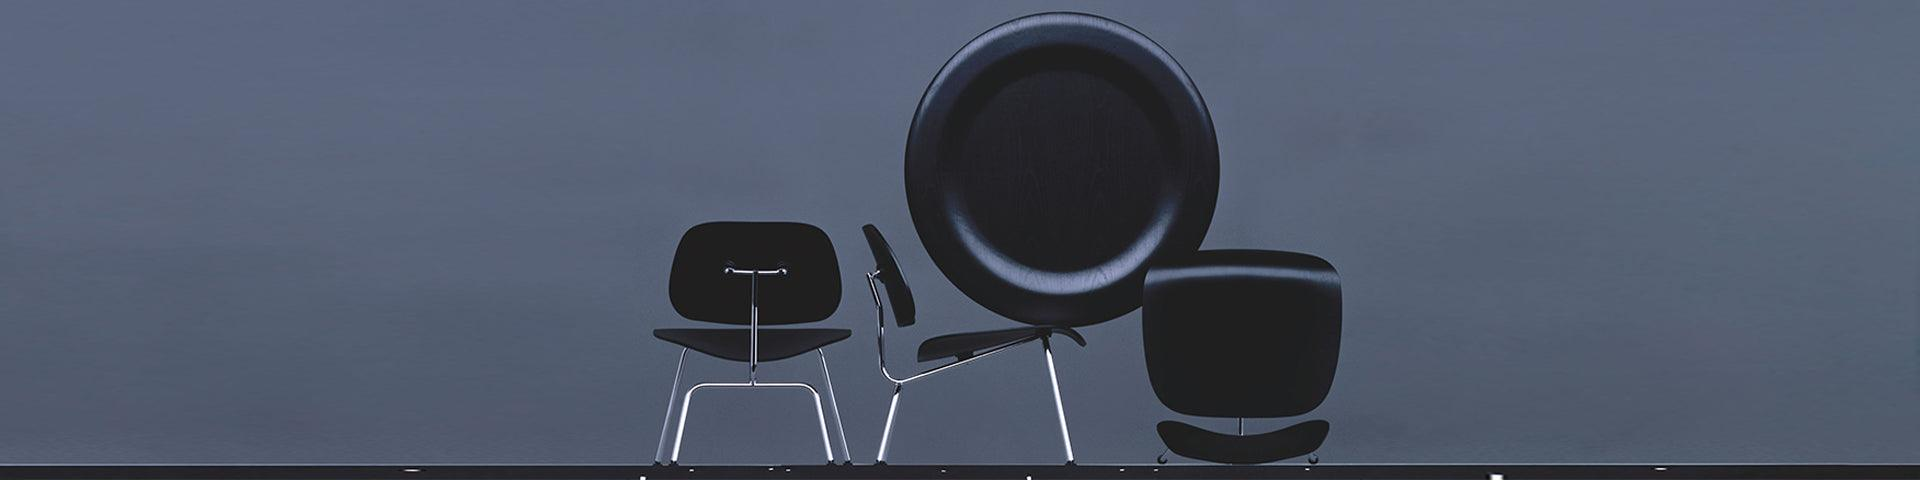 Eames LCM chair, 1945